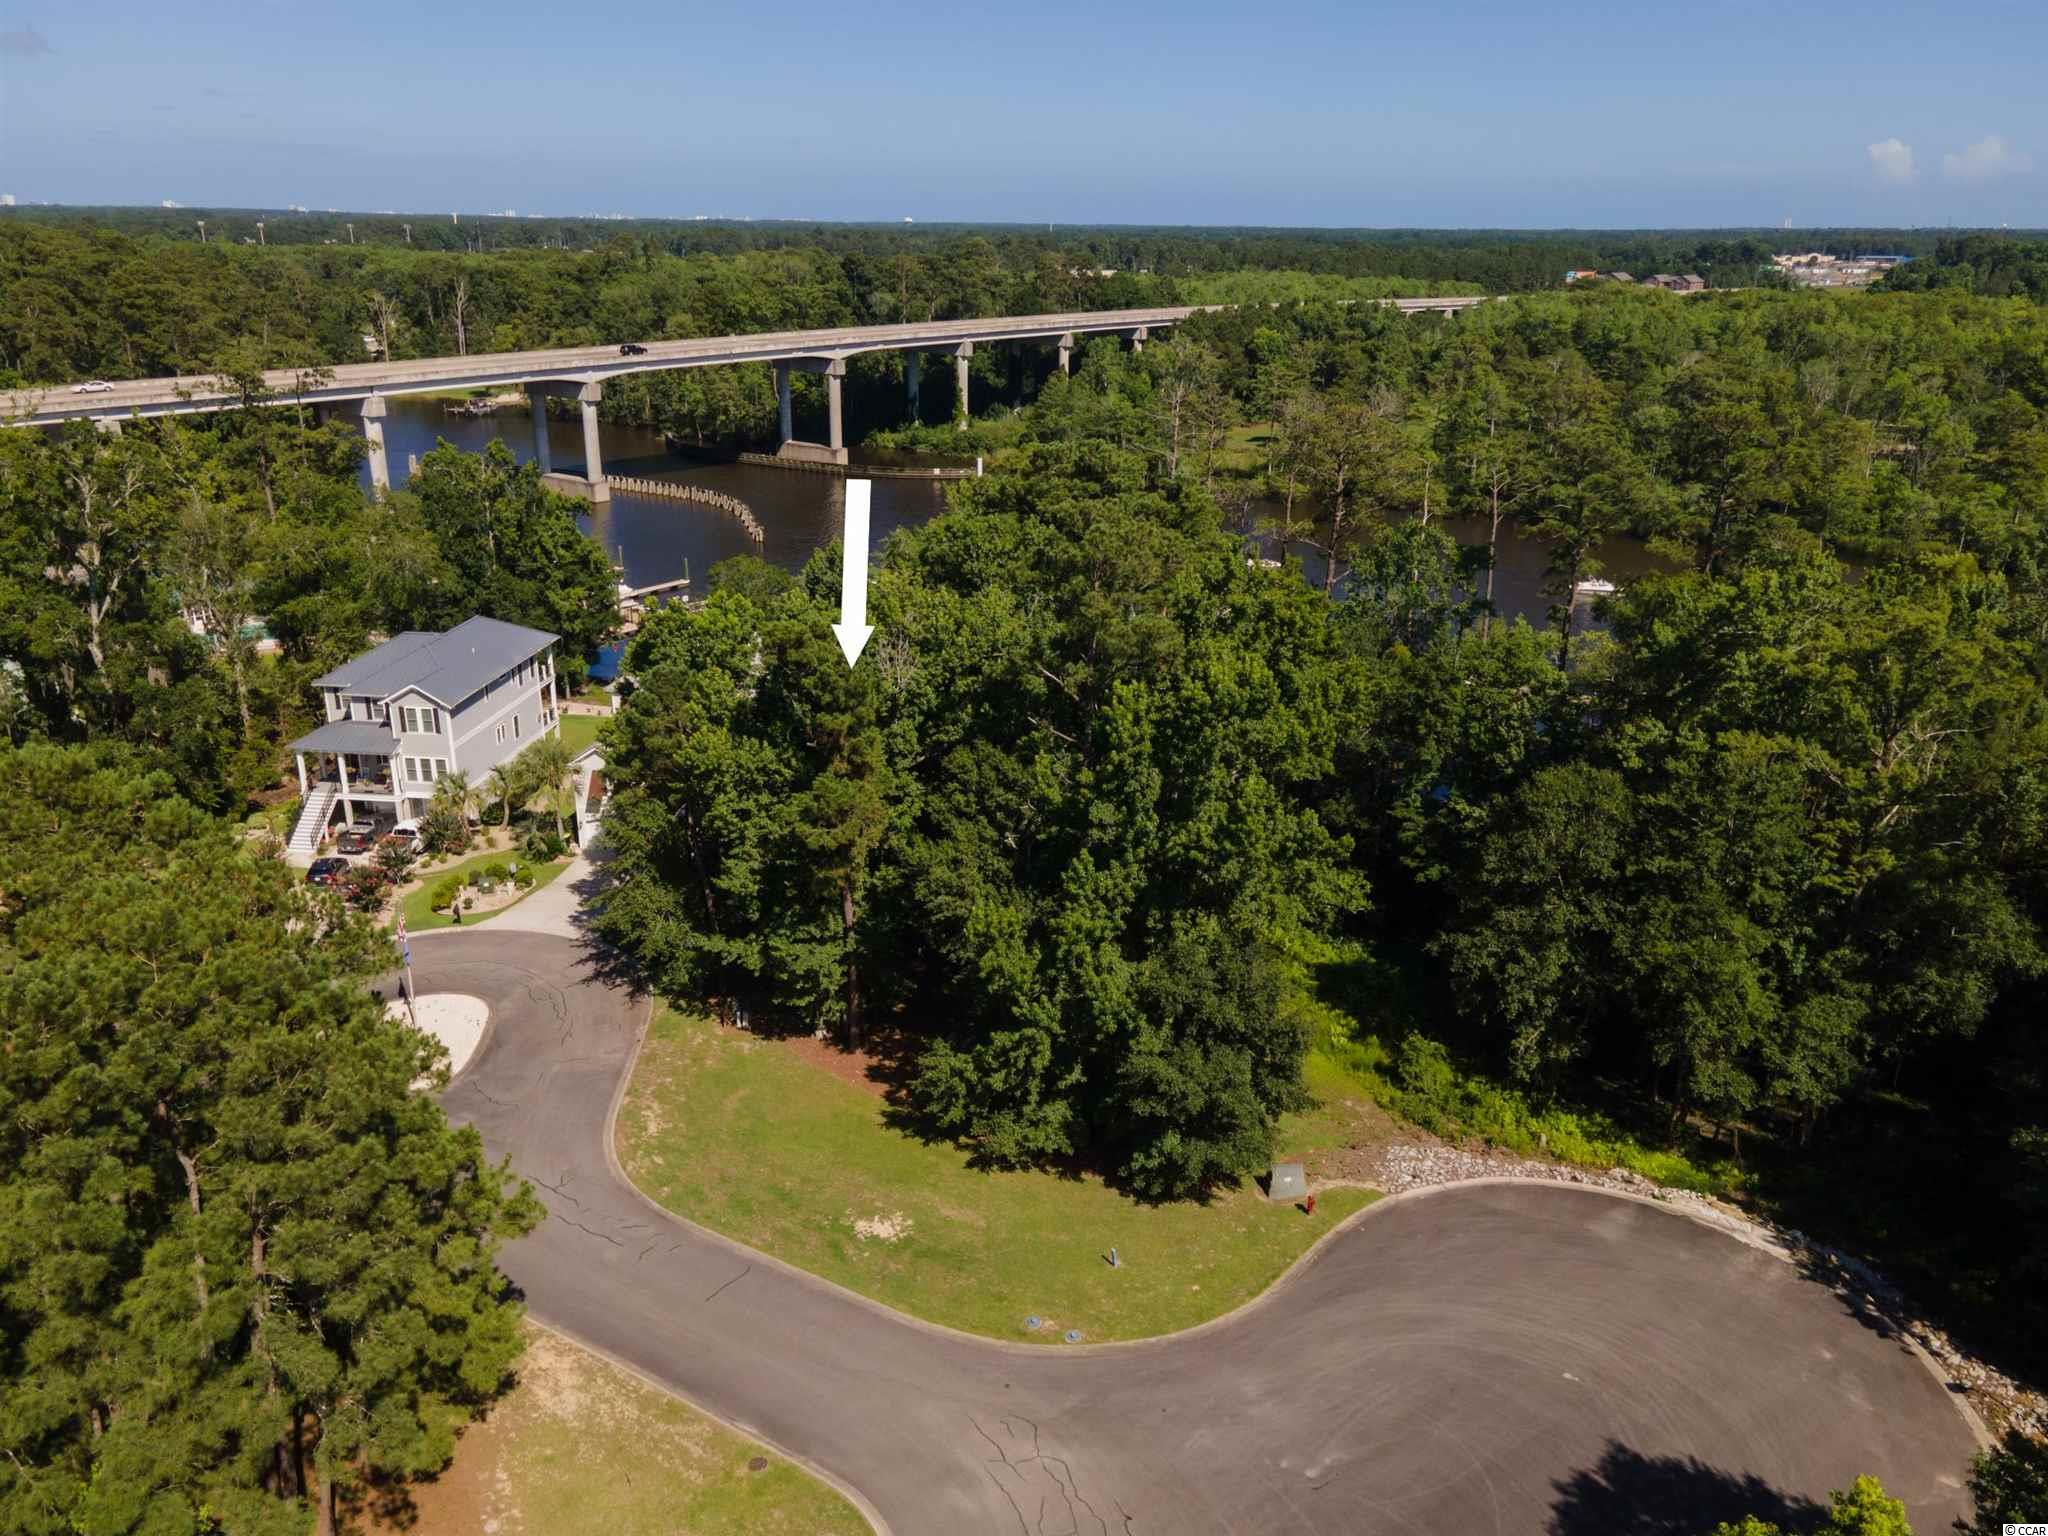 Once in a lifetime opportunity to build your dream home in a gated Intracoastal Waterway community. One of the only remaining waterfront lots in the unique Harbor Oaks Marina. Walk to the community clubhouse, playground and pool. Enjoy the incredible amenities this neighborhood has to offer. Lot also includes a private 50 foot boat slip.   Come build your dream home today!